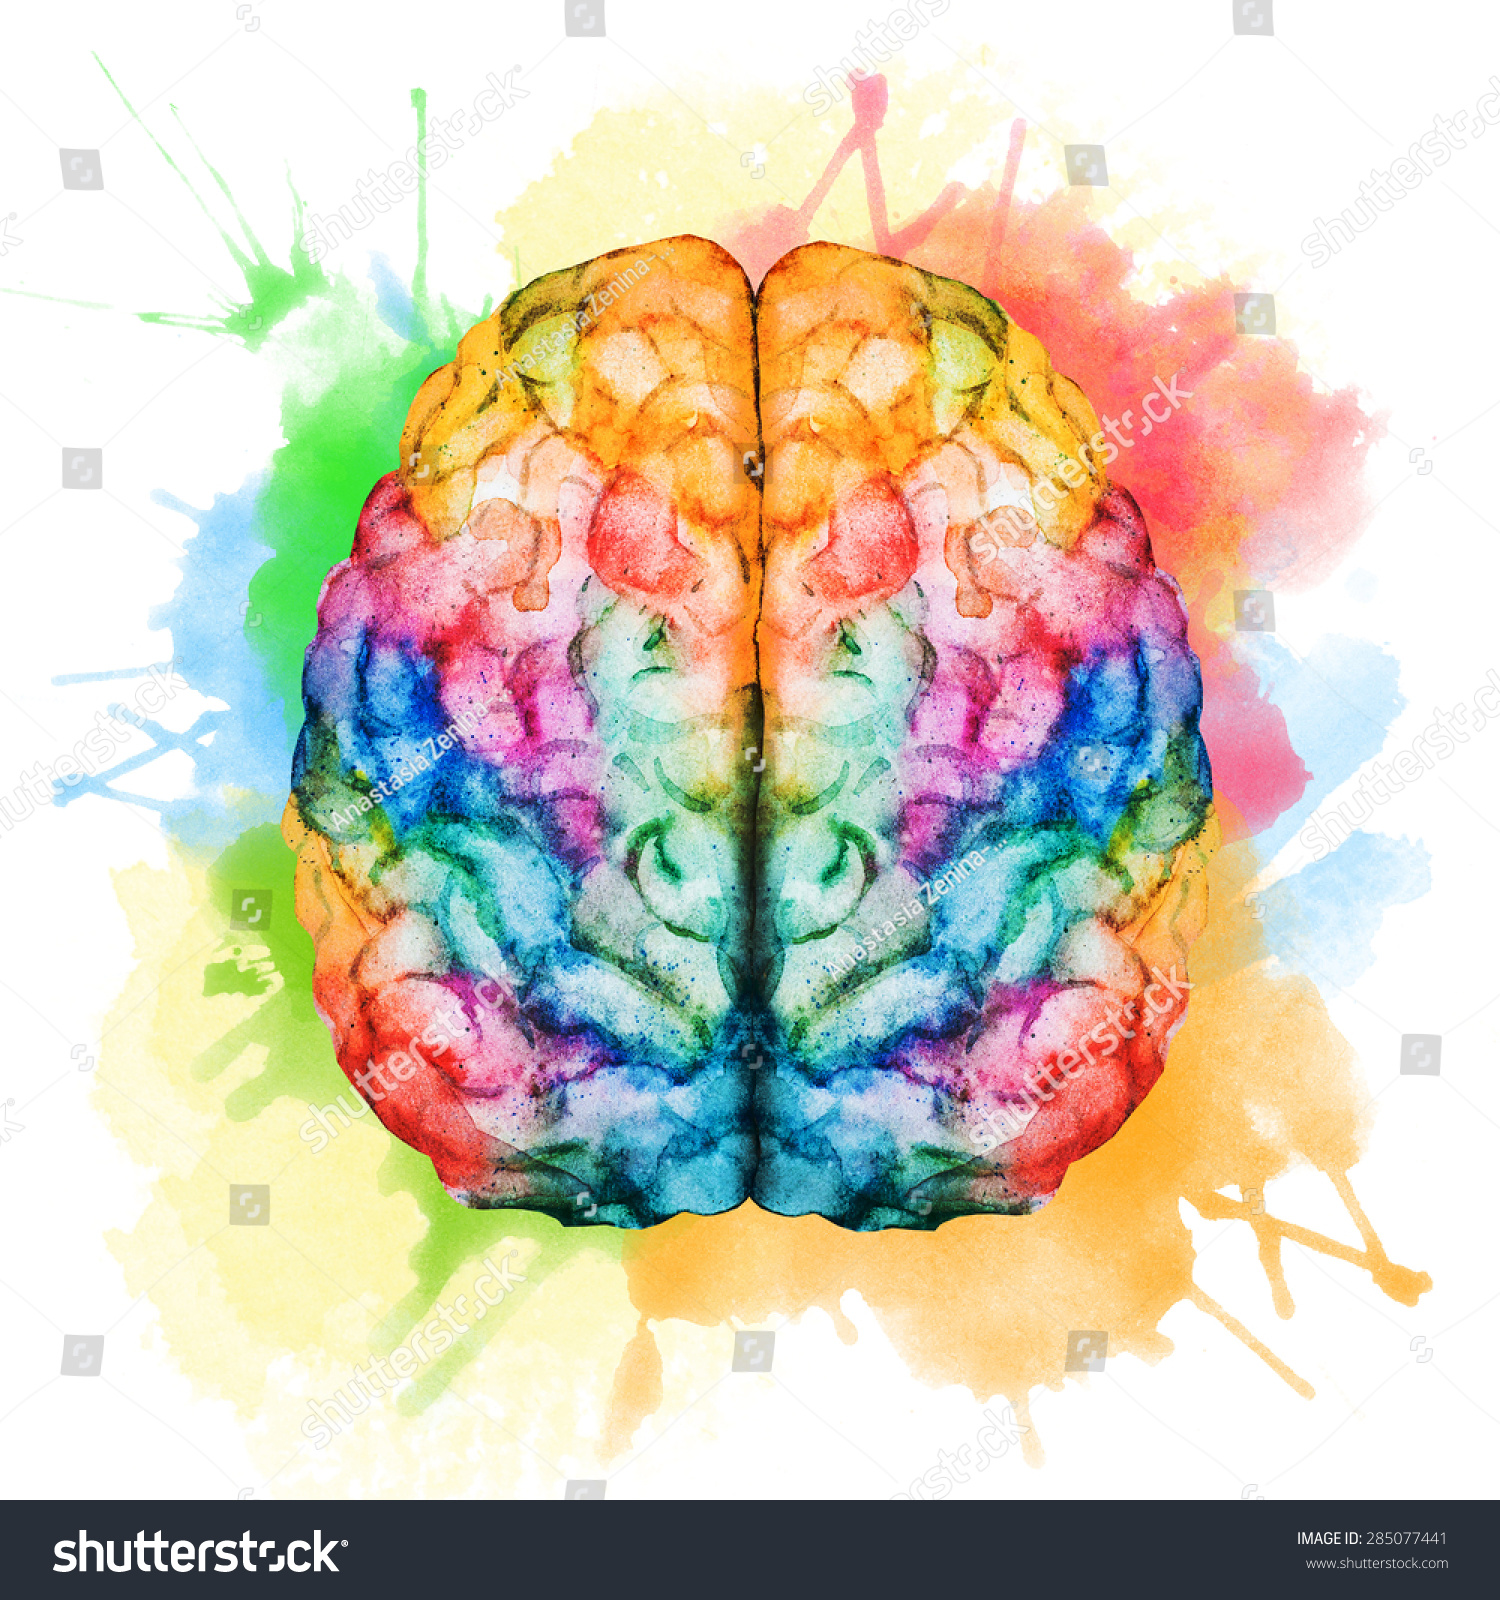 watercolor illustration bright colorful brain spray stock